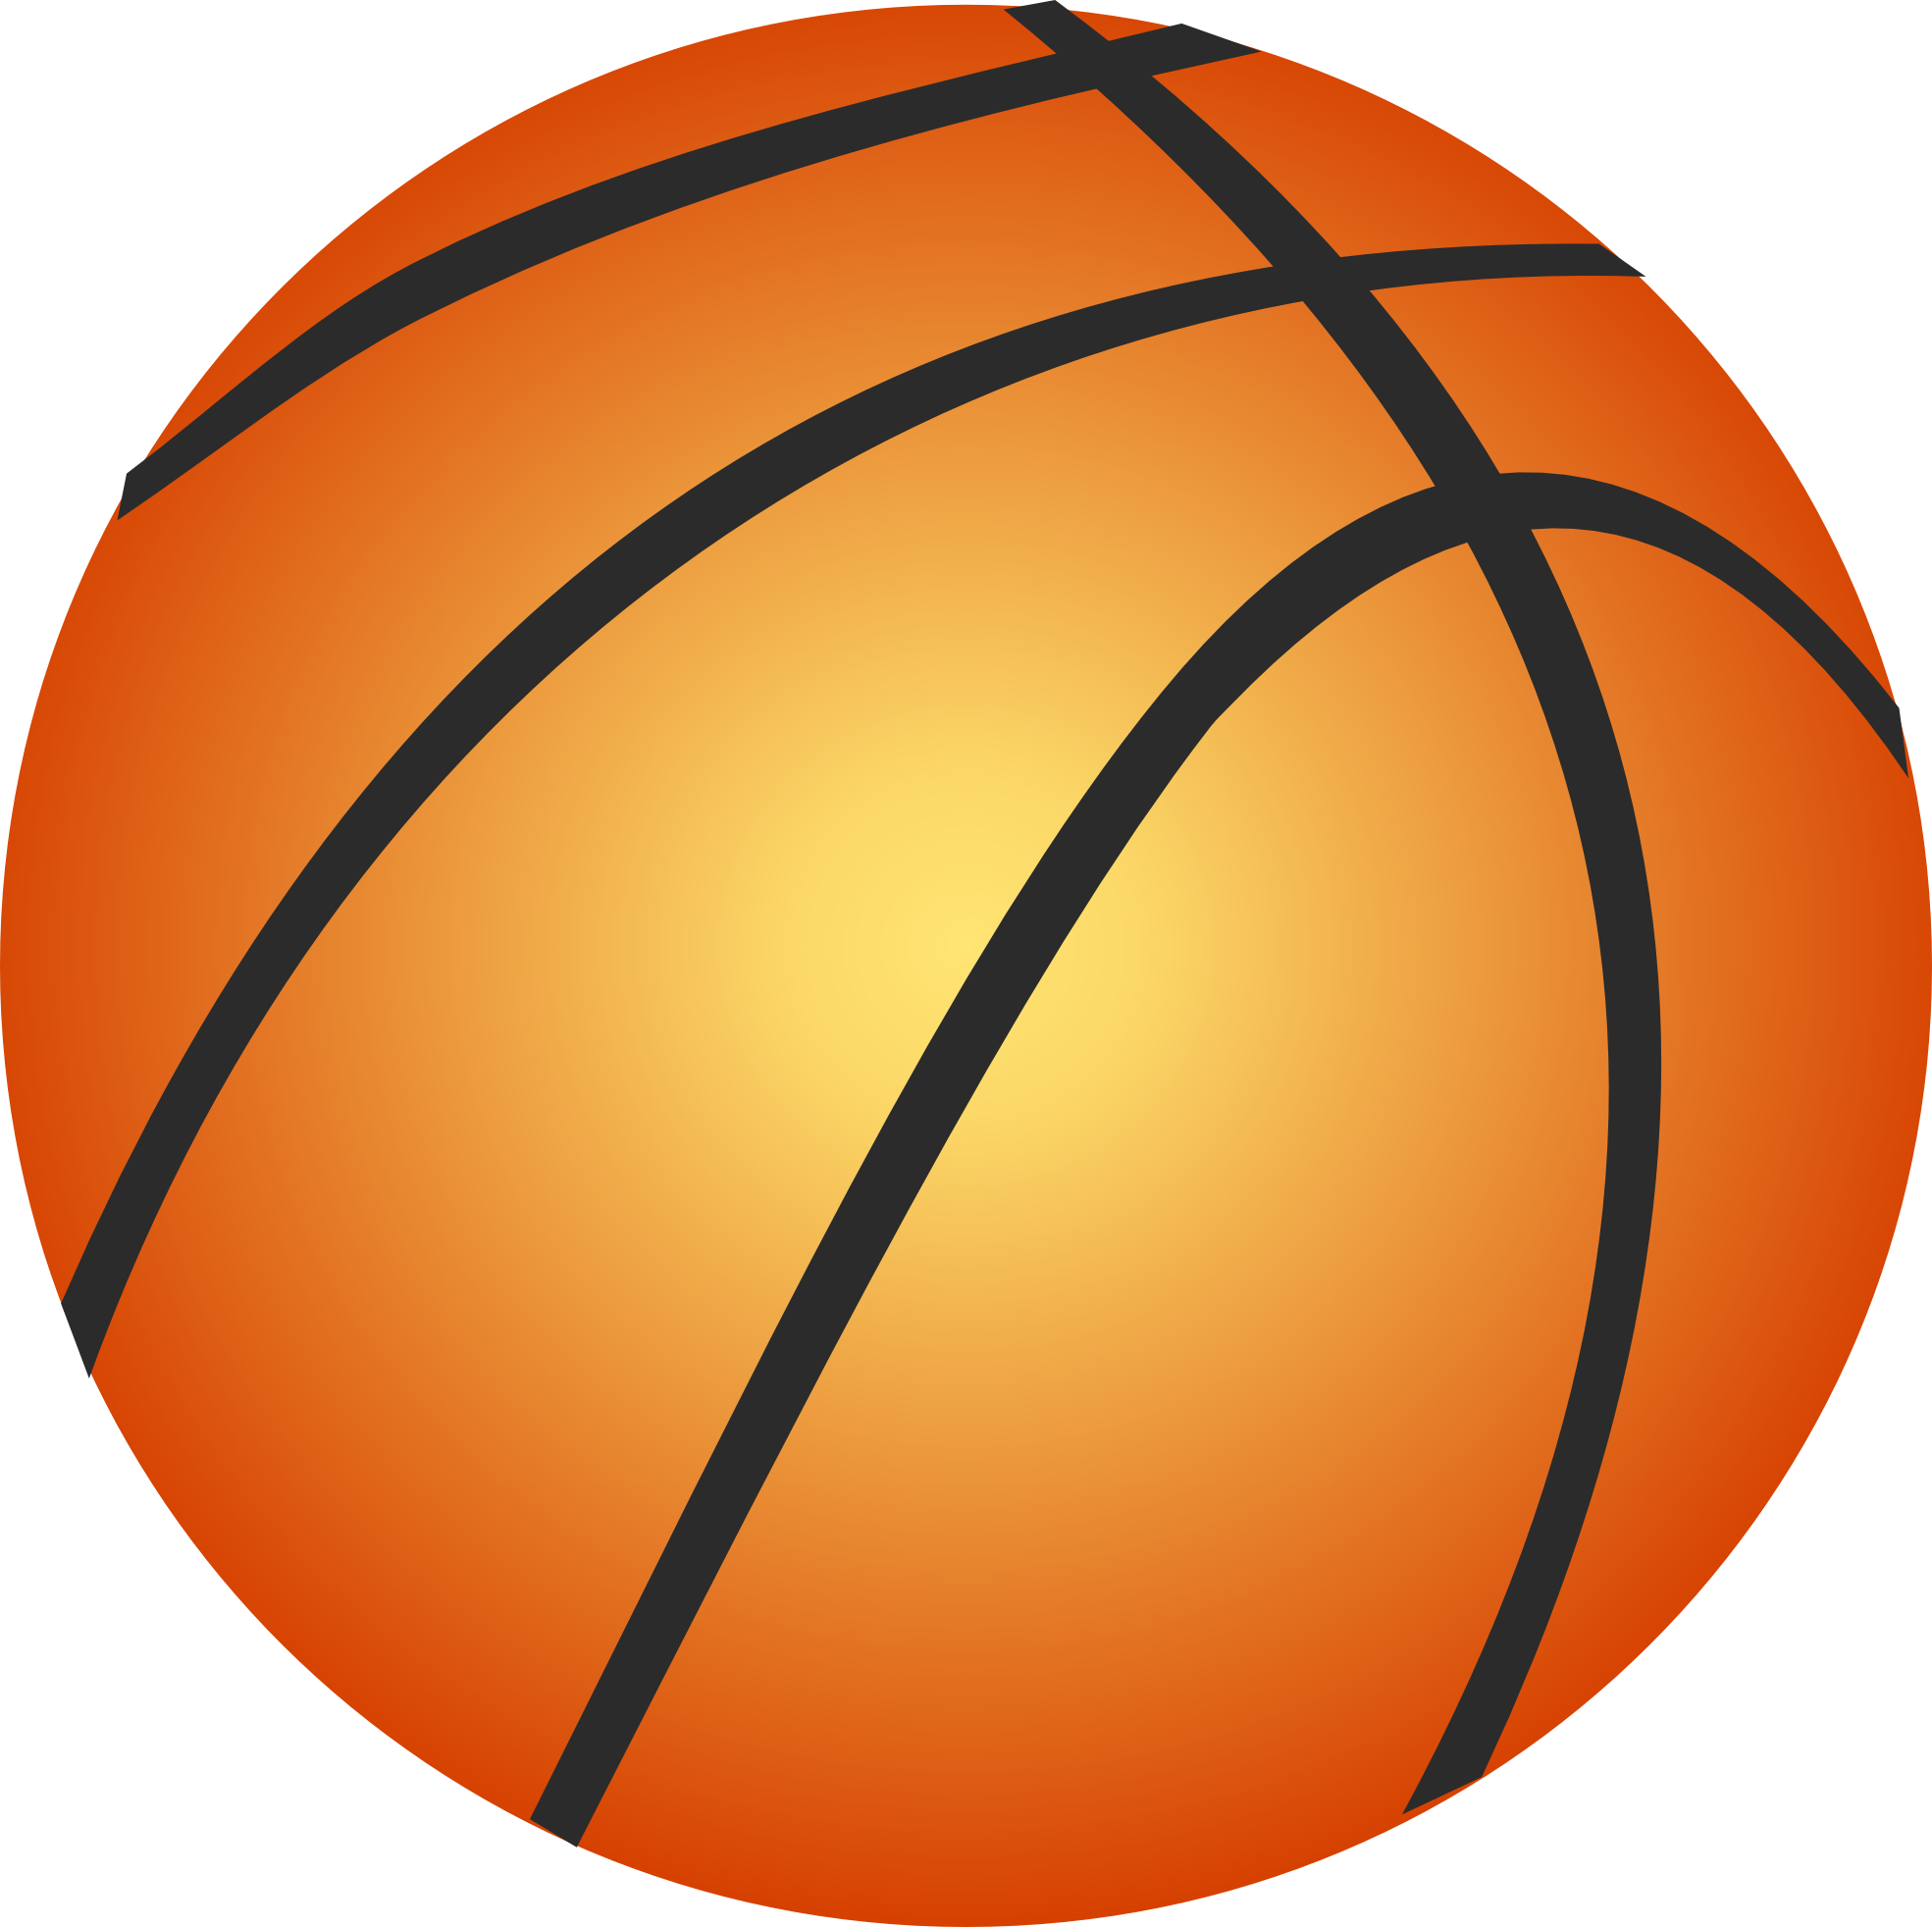 Basketball Net Clipart | Clipart Panda - Free Clipart Images